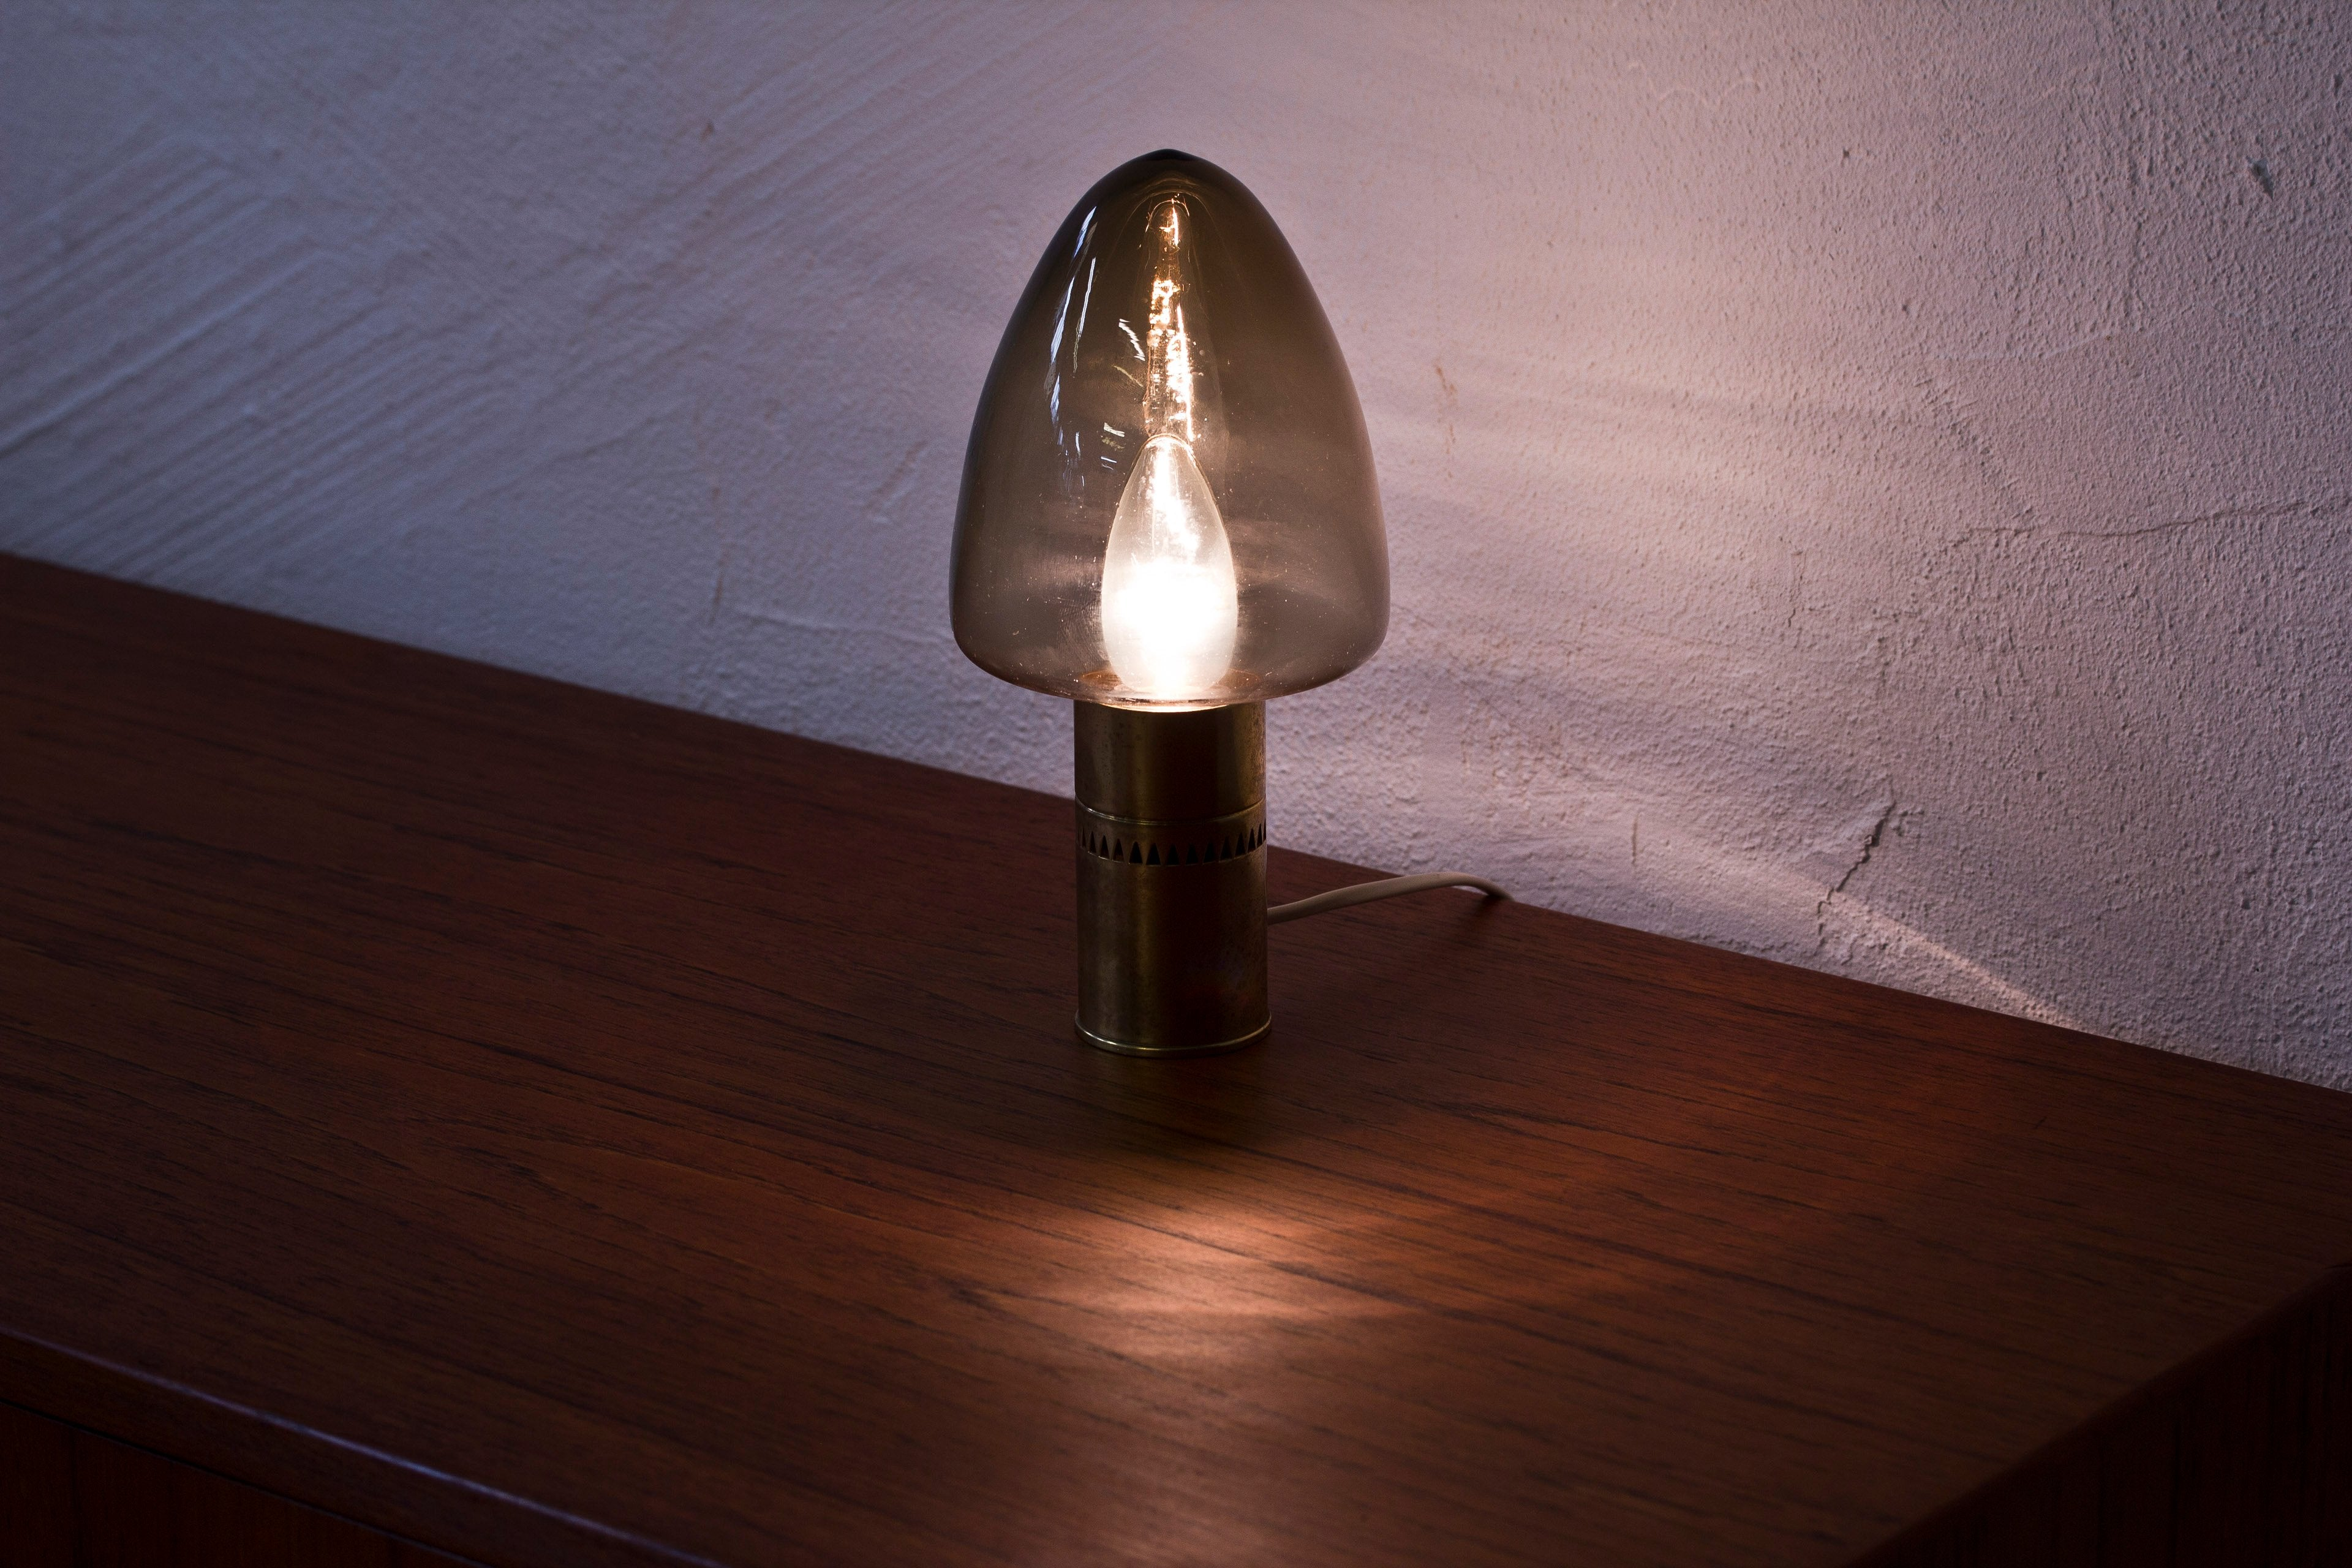 Table lamp B121 by Hans Agne jakobsson